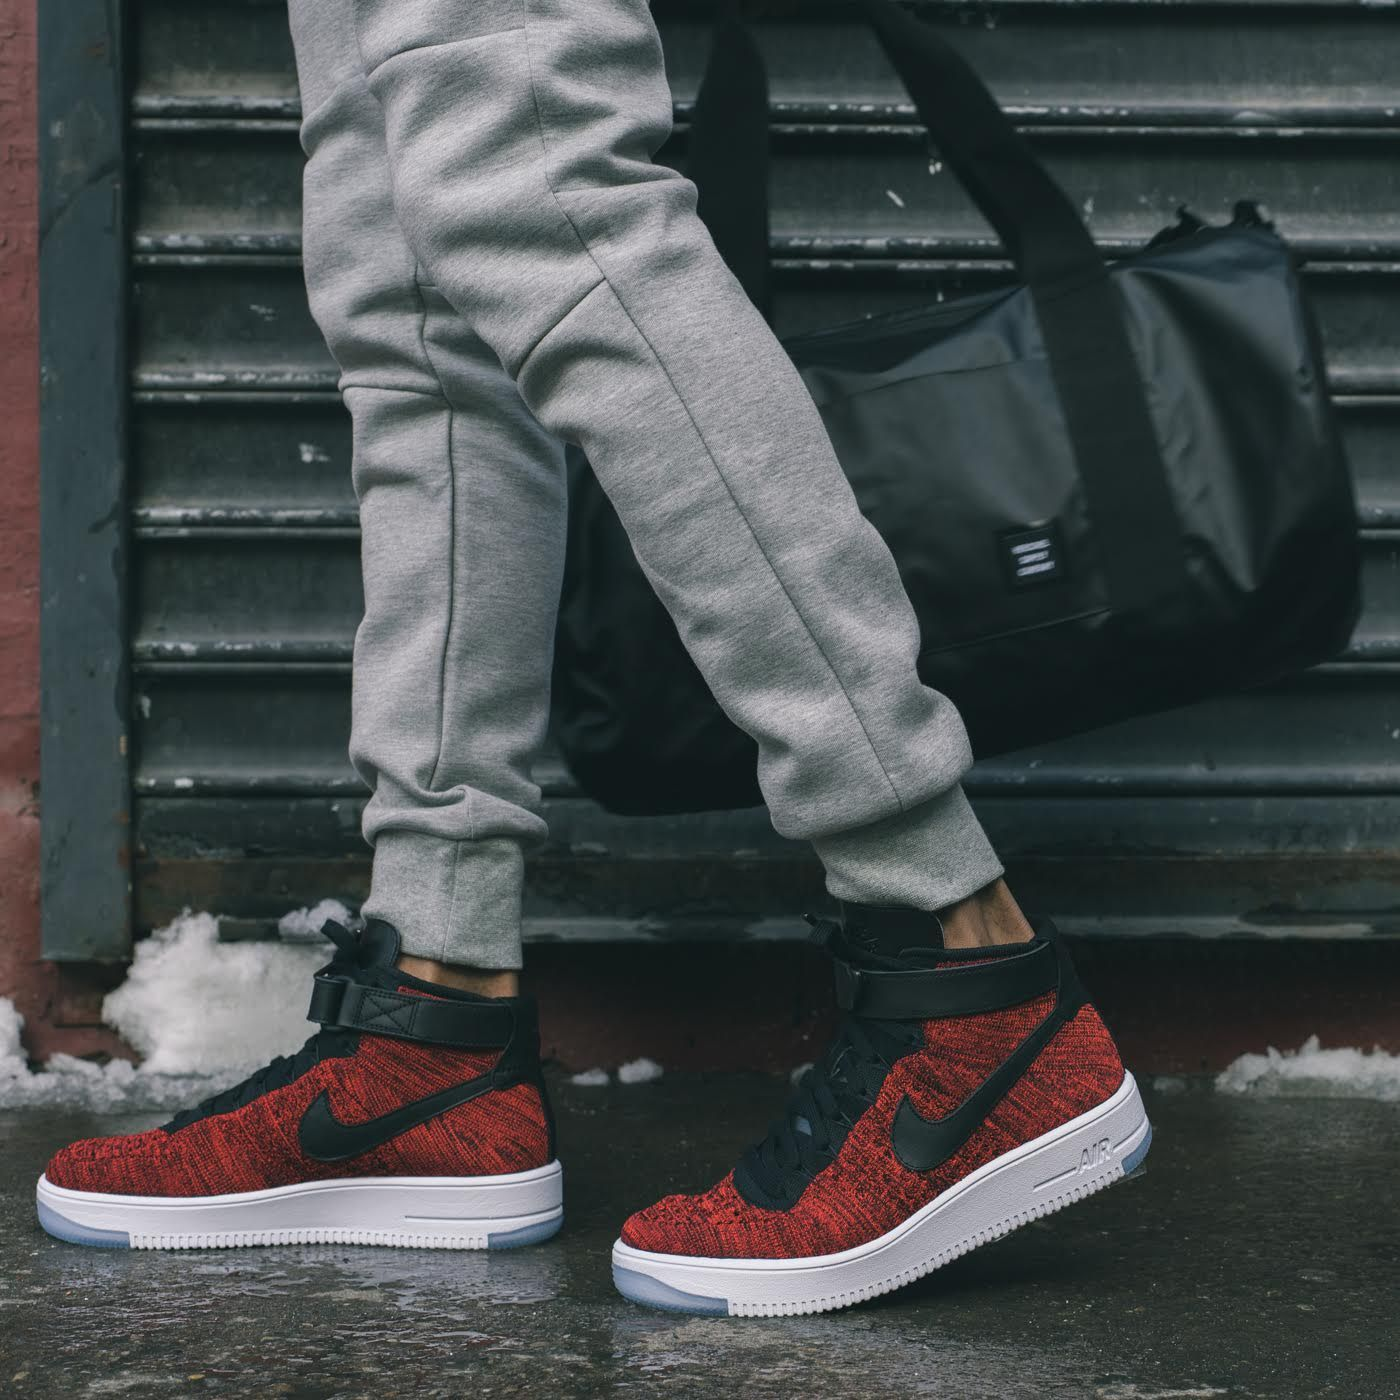 8854bcda5dbf An On-Feet Look At The Nike Air Force 1 Ultra Flyknit Red   Black •  KicksOnFire.com